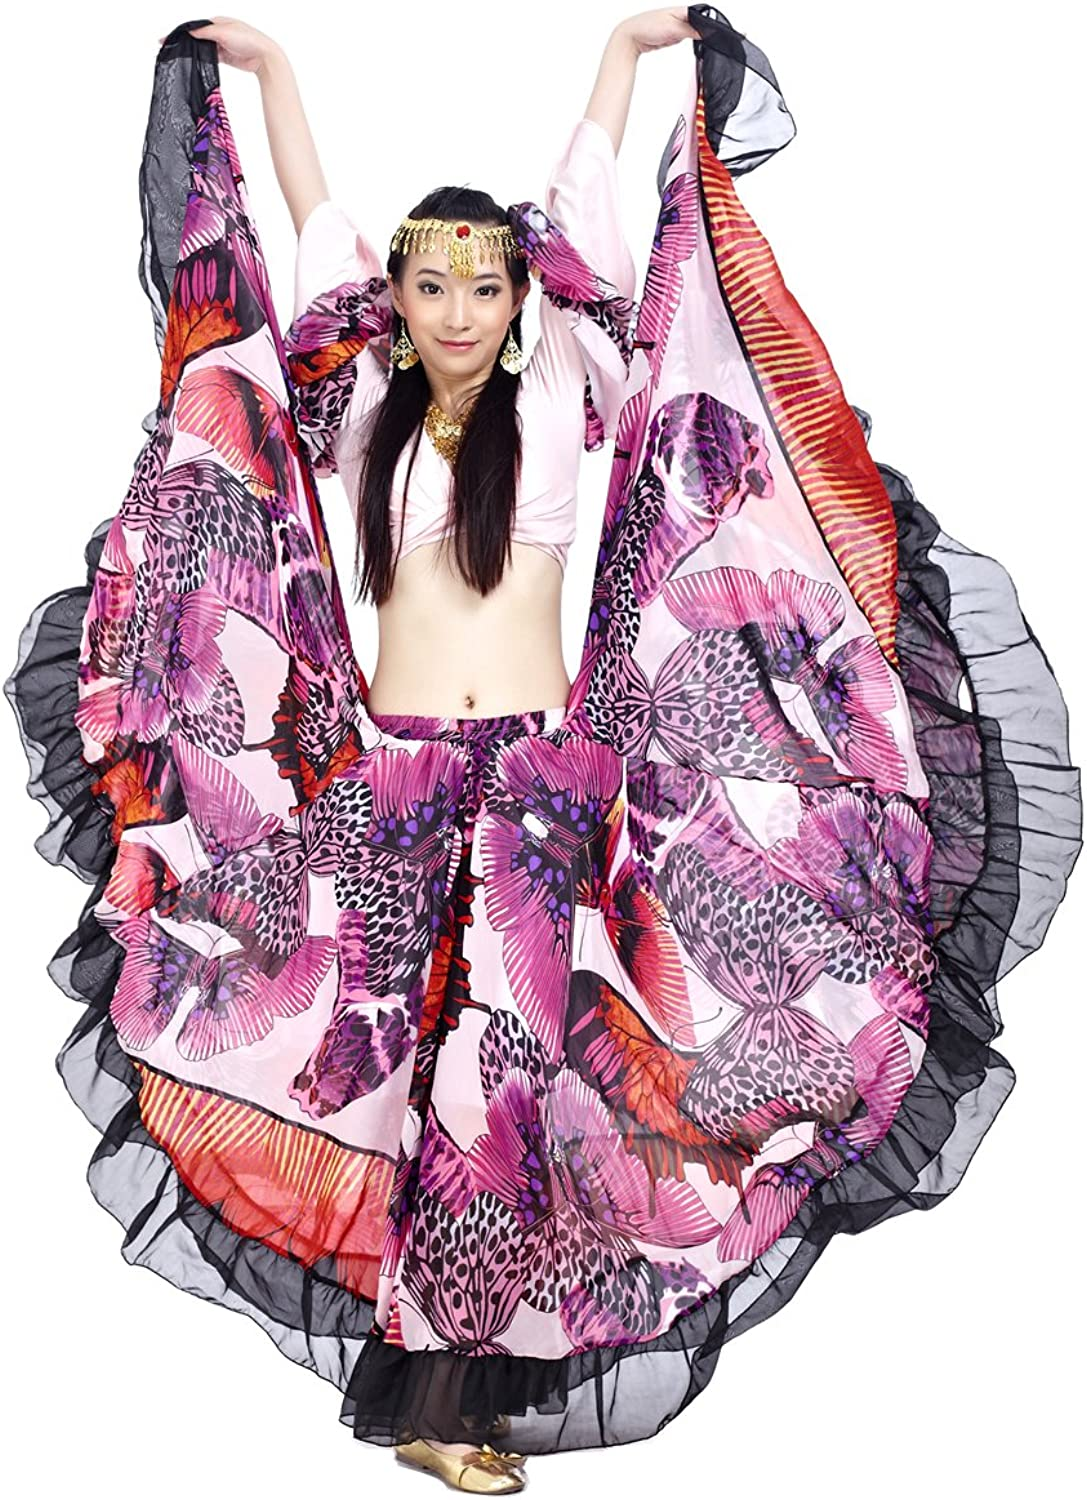 DEMON BABY HighEnd Gypsy Tribal 25Yard Belly Dance Maxi Skirts Ball Gown with Butterfly Print Pattern Full Skirt